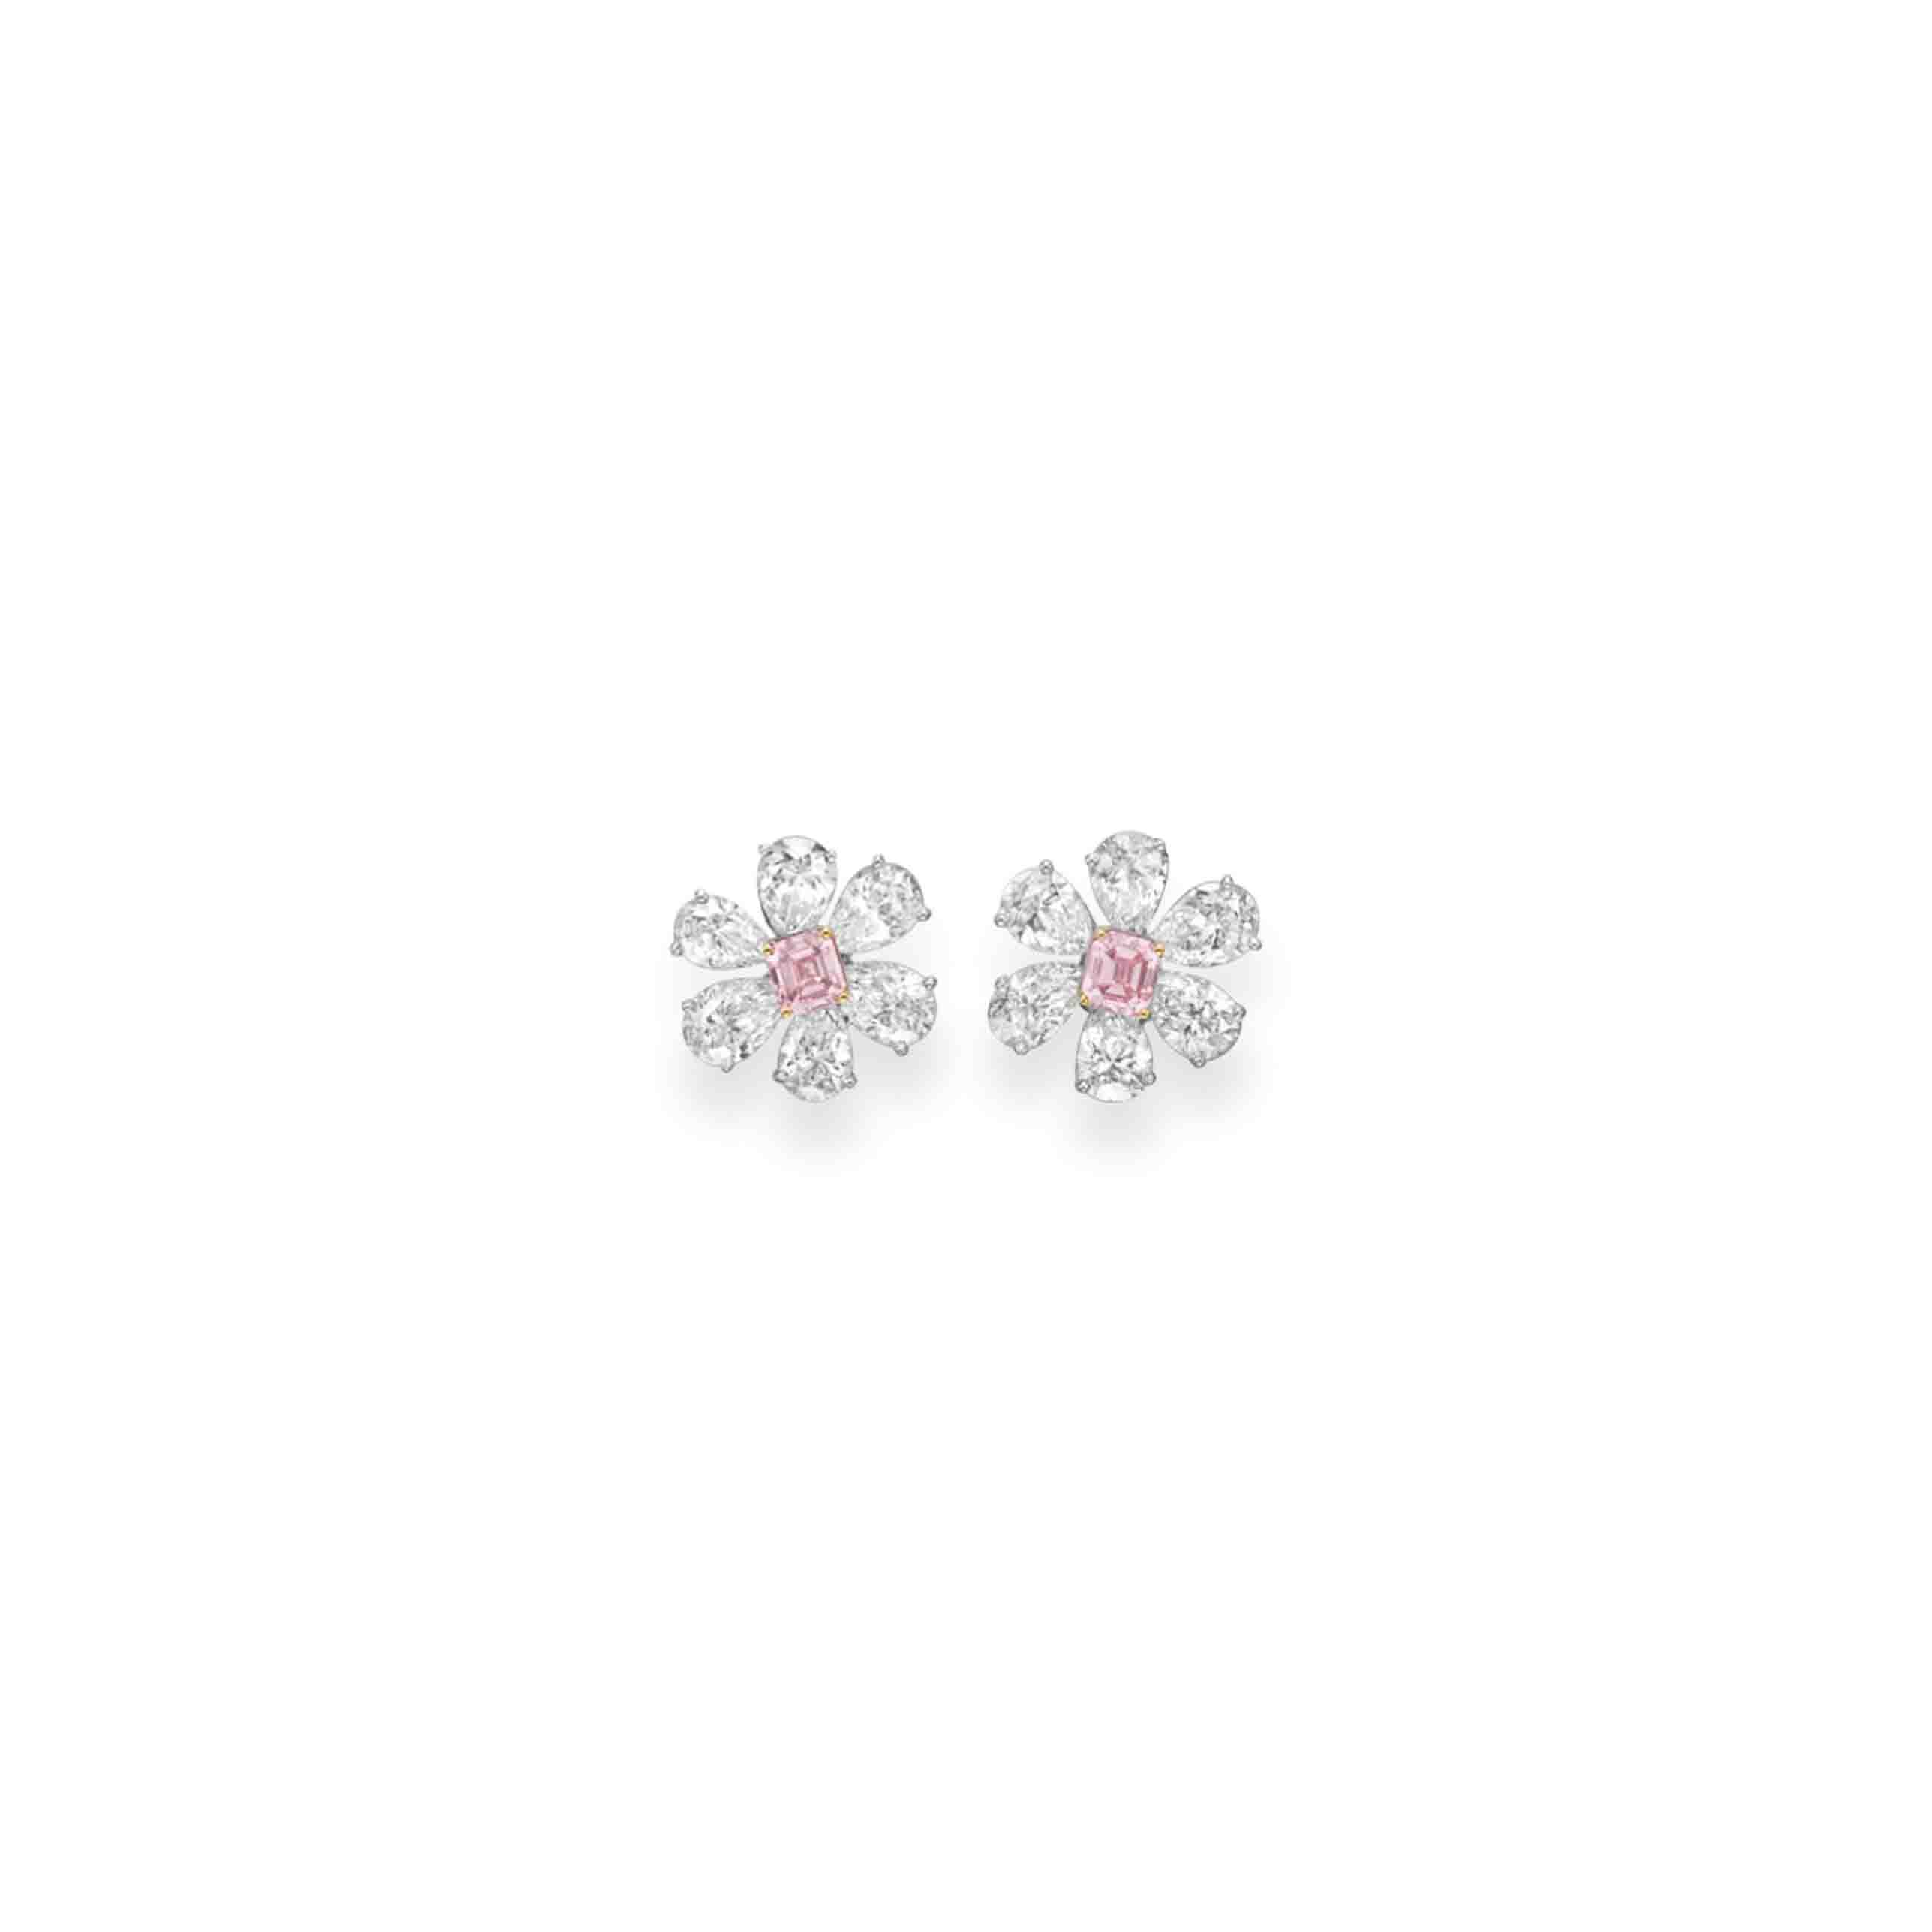 A PAIR OF COLORED DIAMOND AND DIAMOND EAR CLIPS